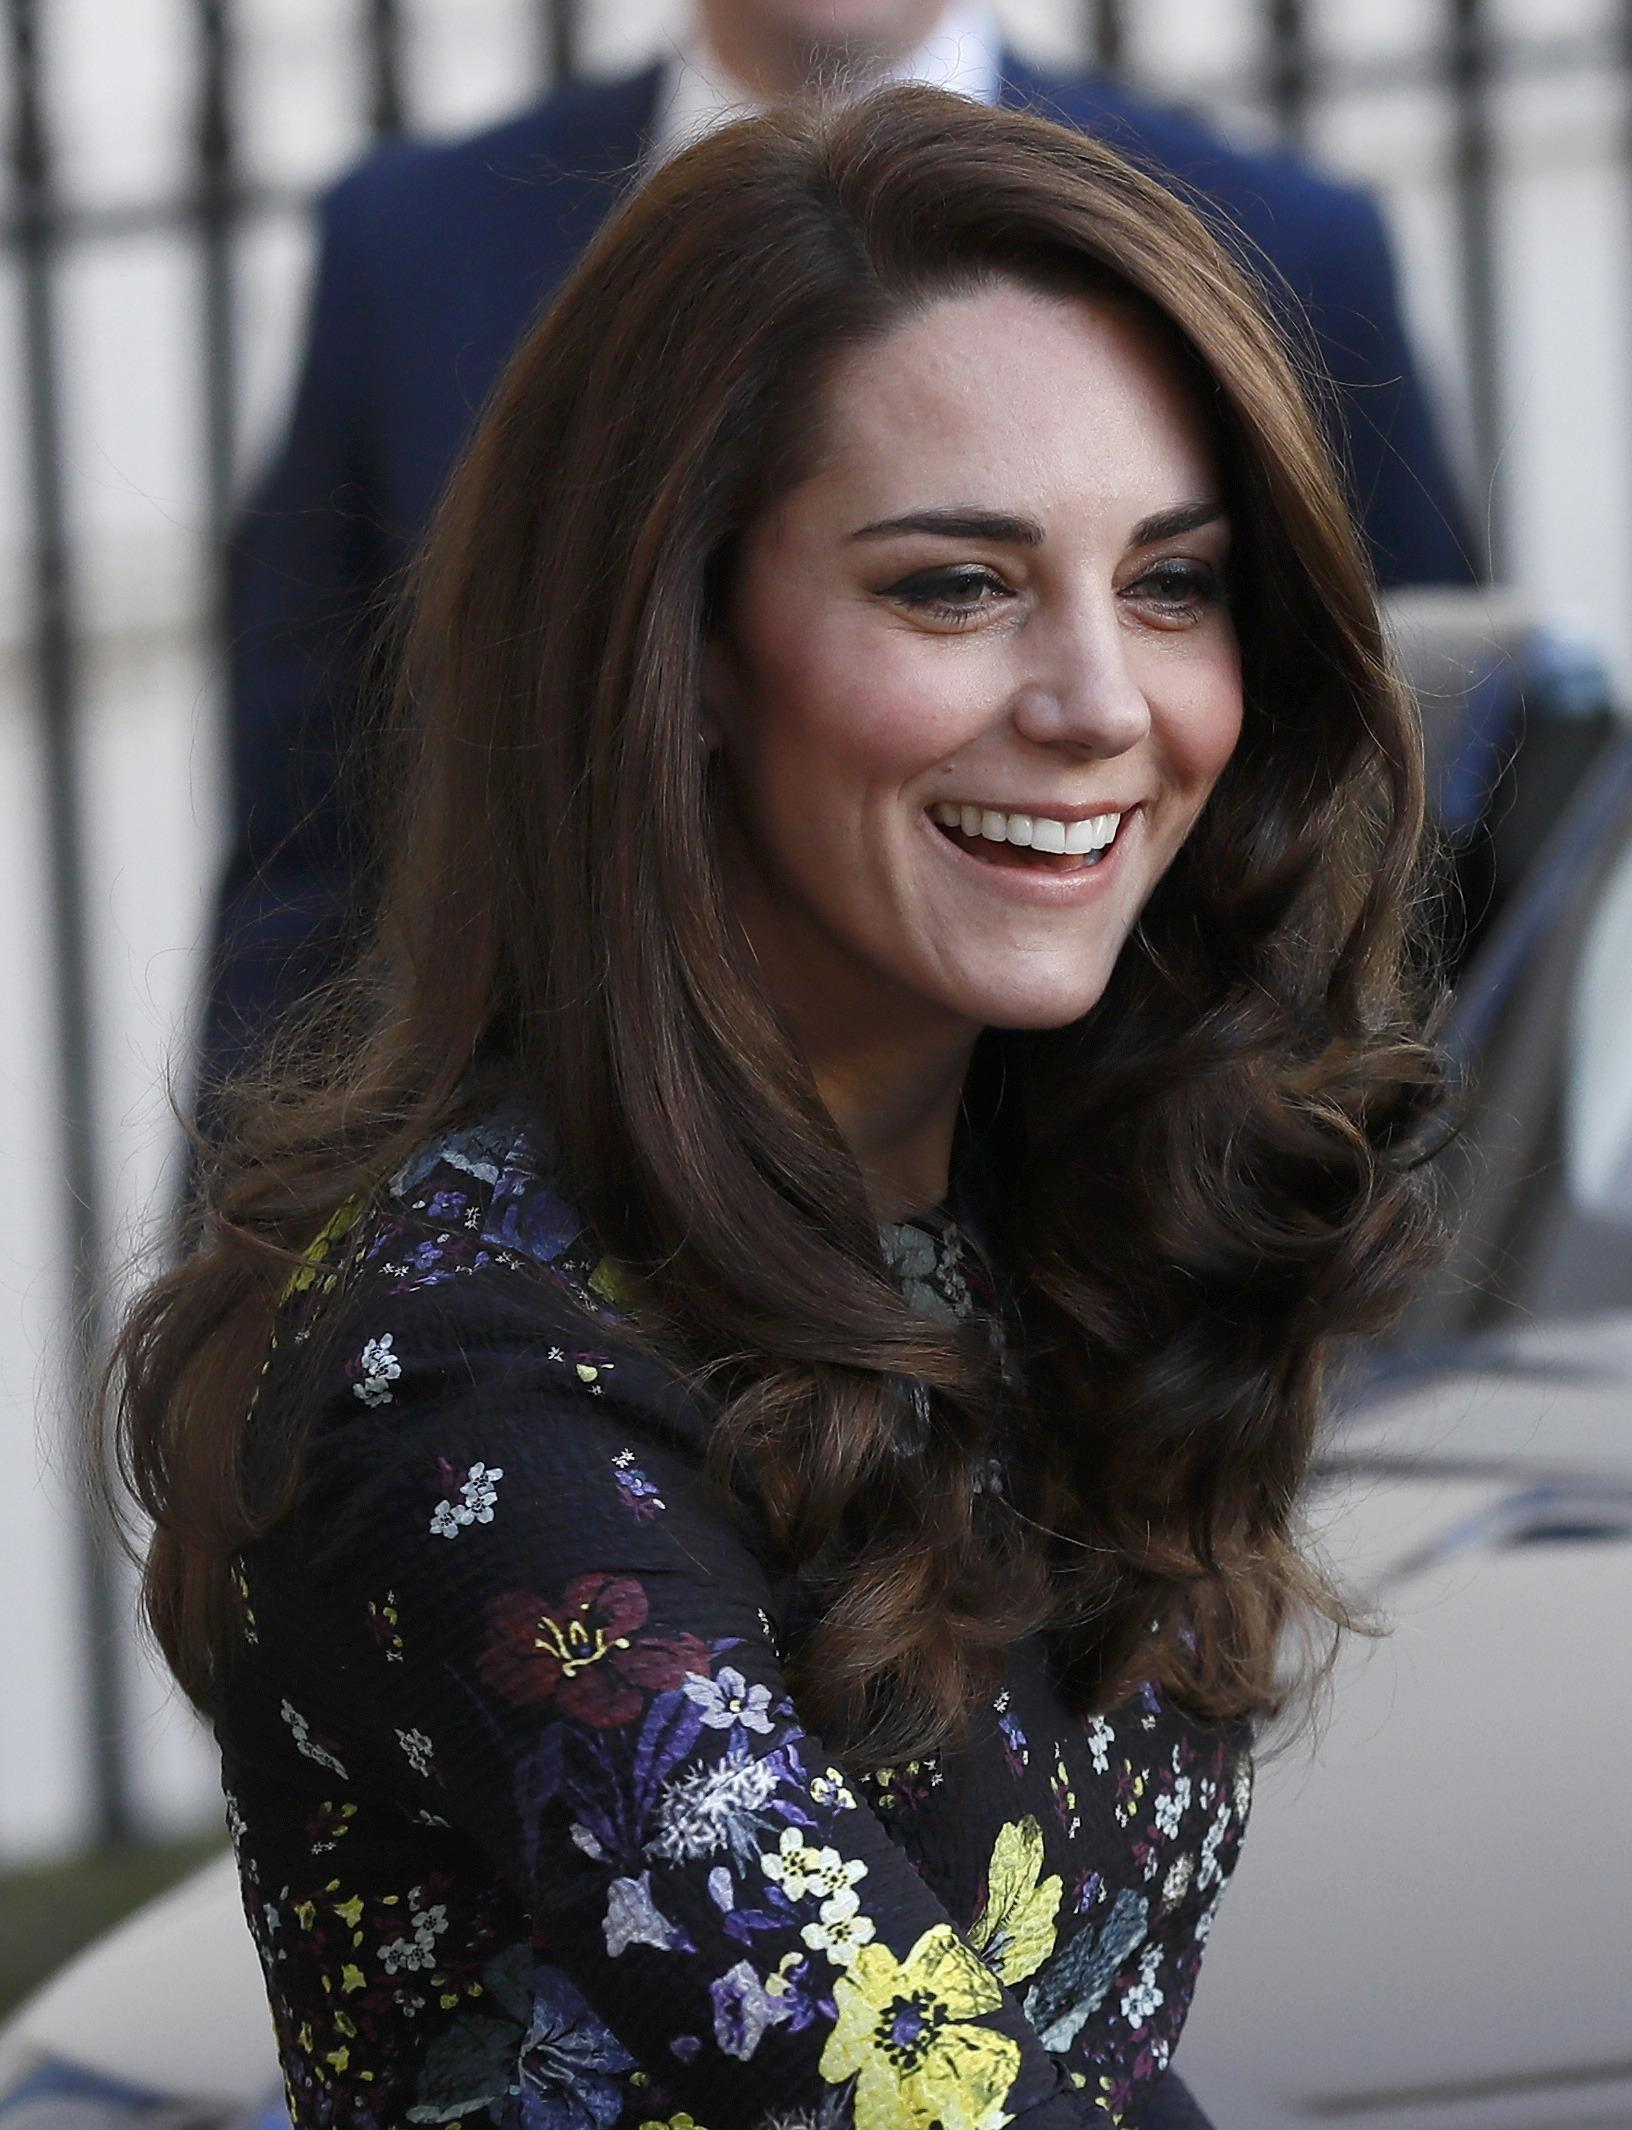 Kate Middleton shows off her new hairstyle as she joins William and